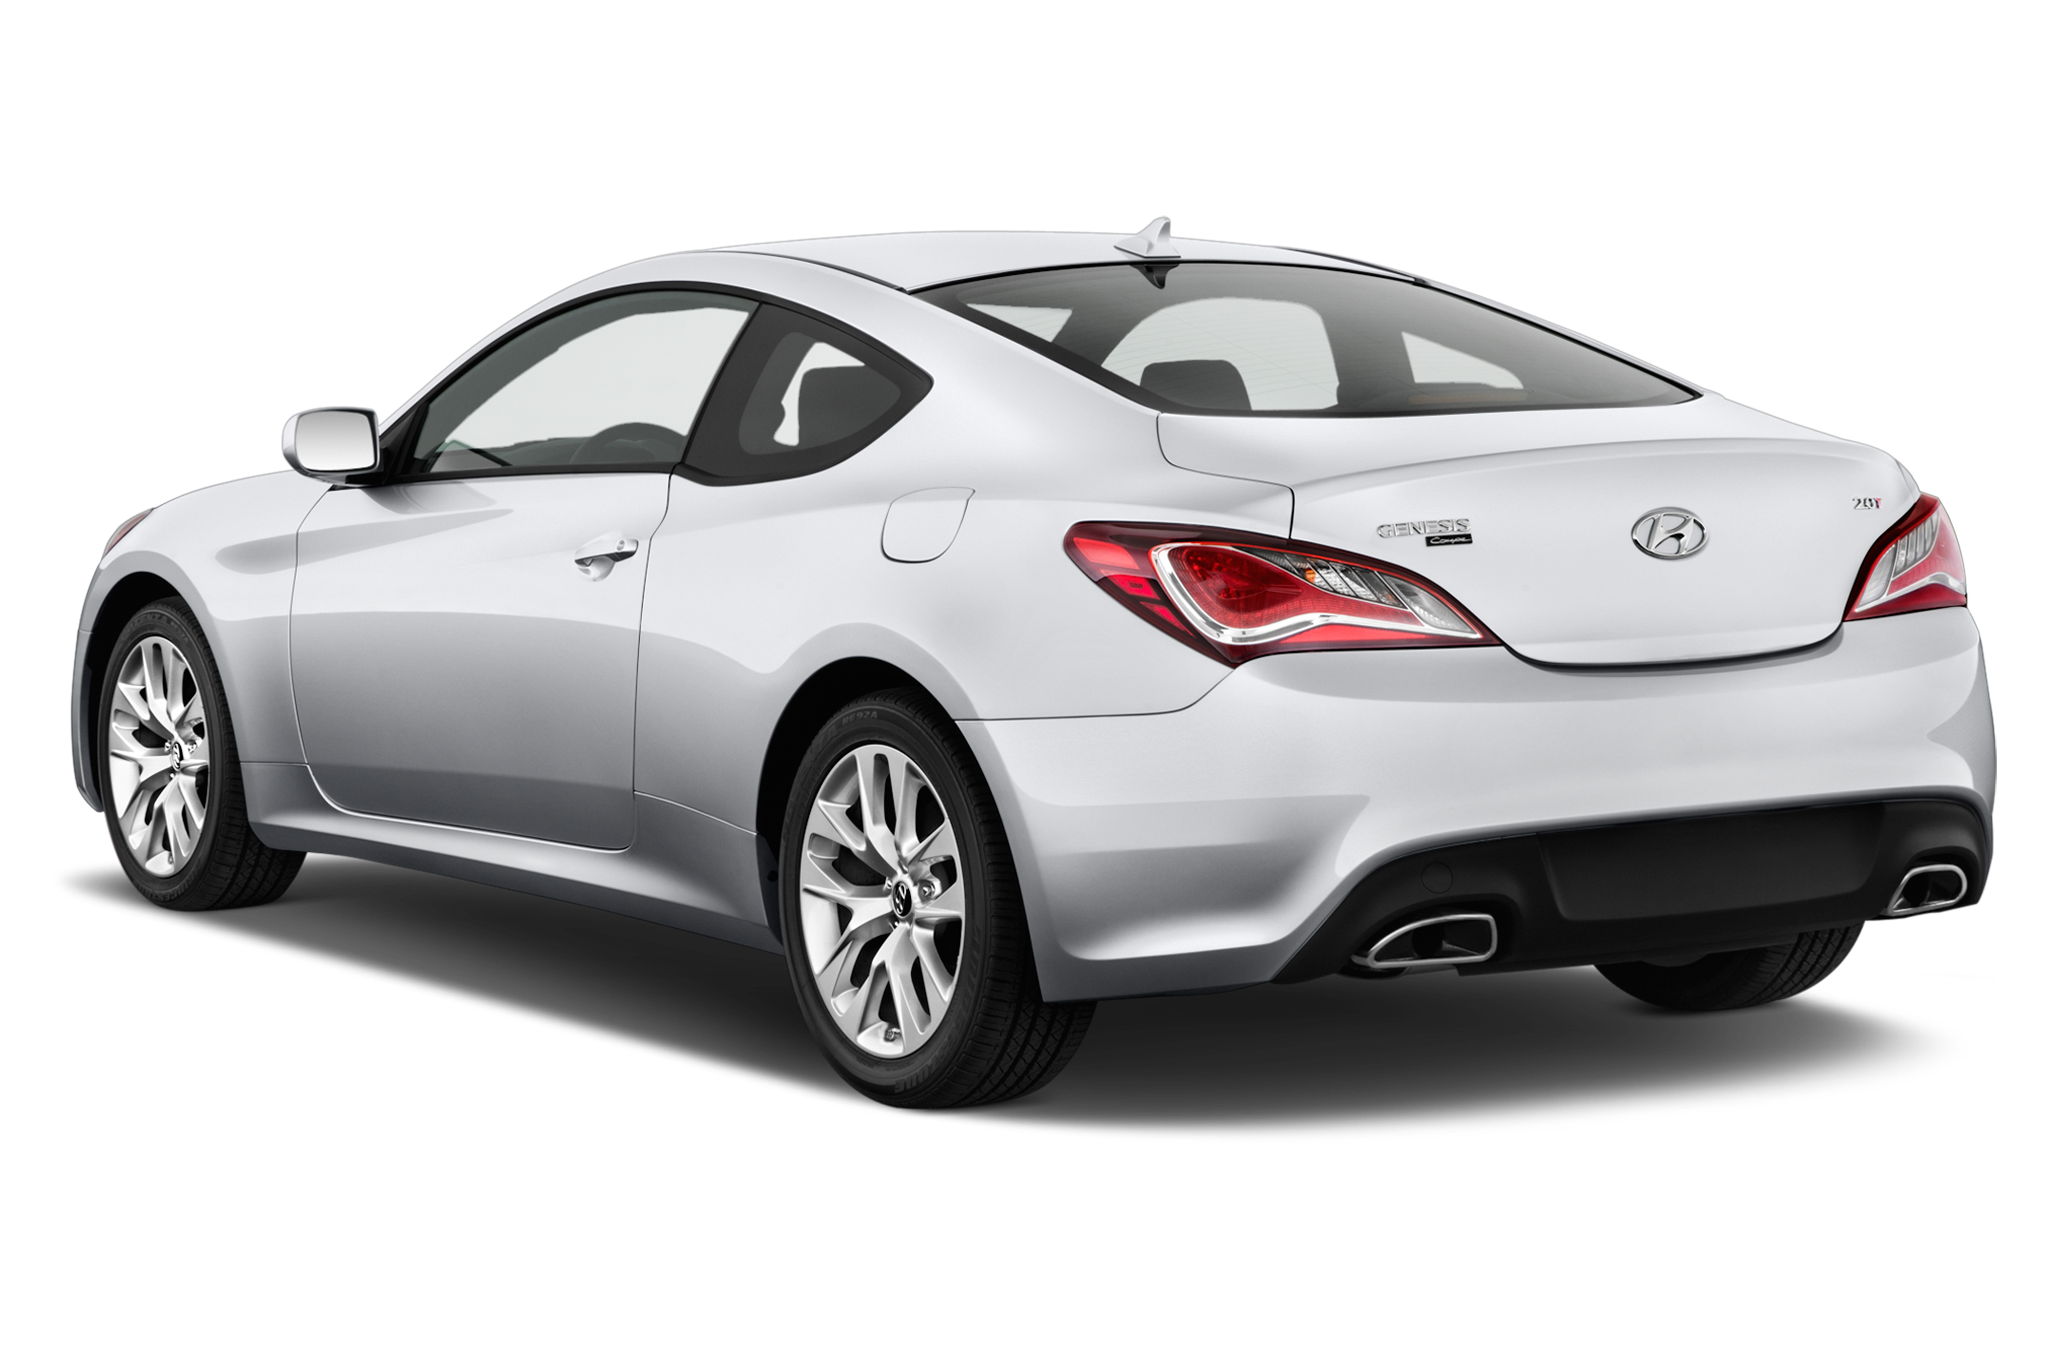 Hyundai GENESIS COUPE 3.8 Track 8 Speed A/T   2013 ( PRICES U0026 SPECS )